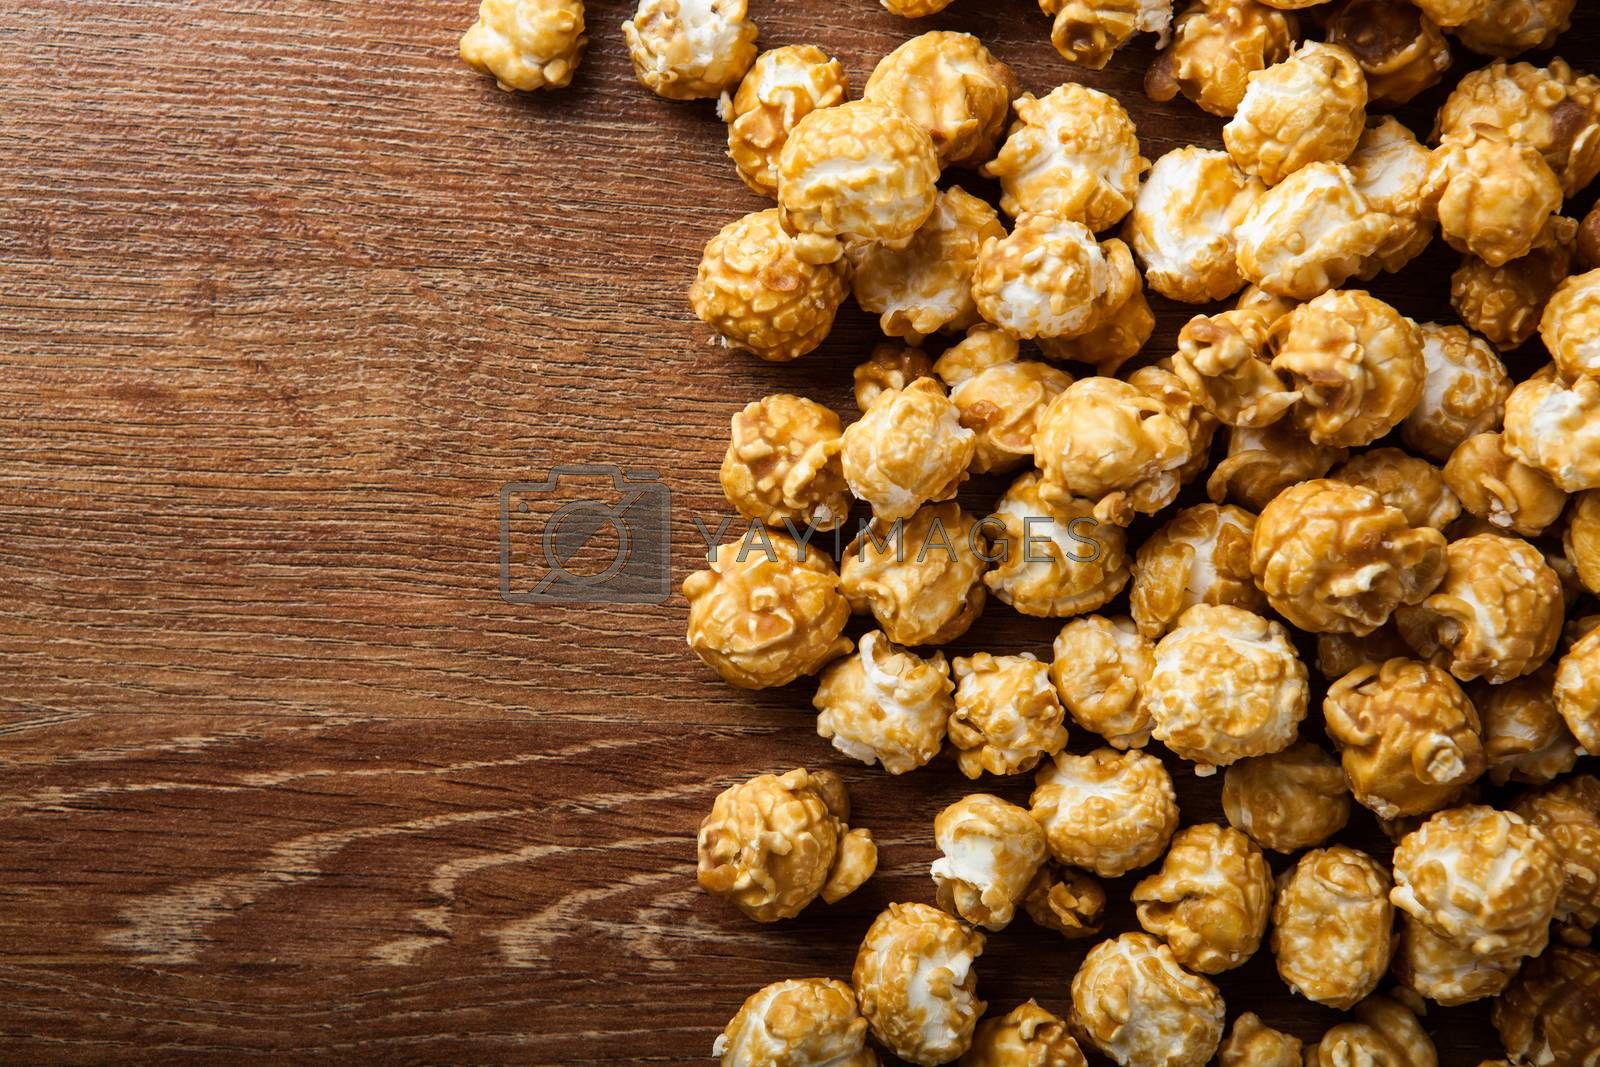 Royalty free image of a lot of golden caramel corn background by mizar_21984